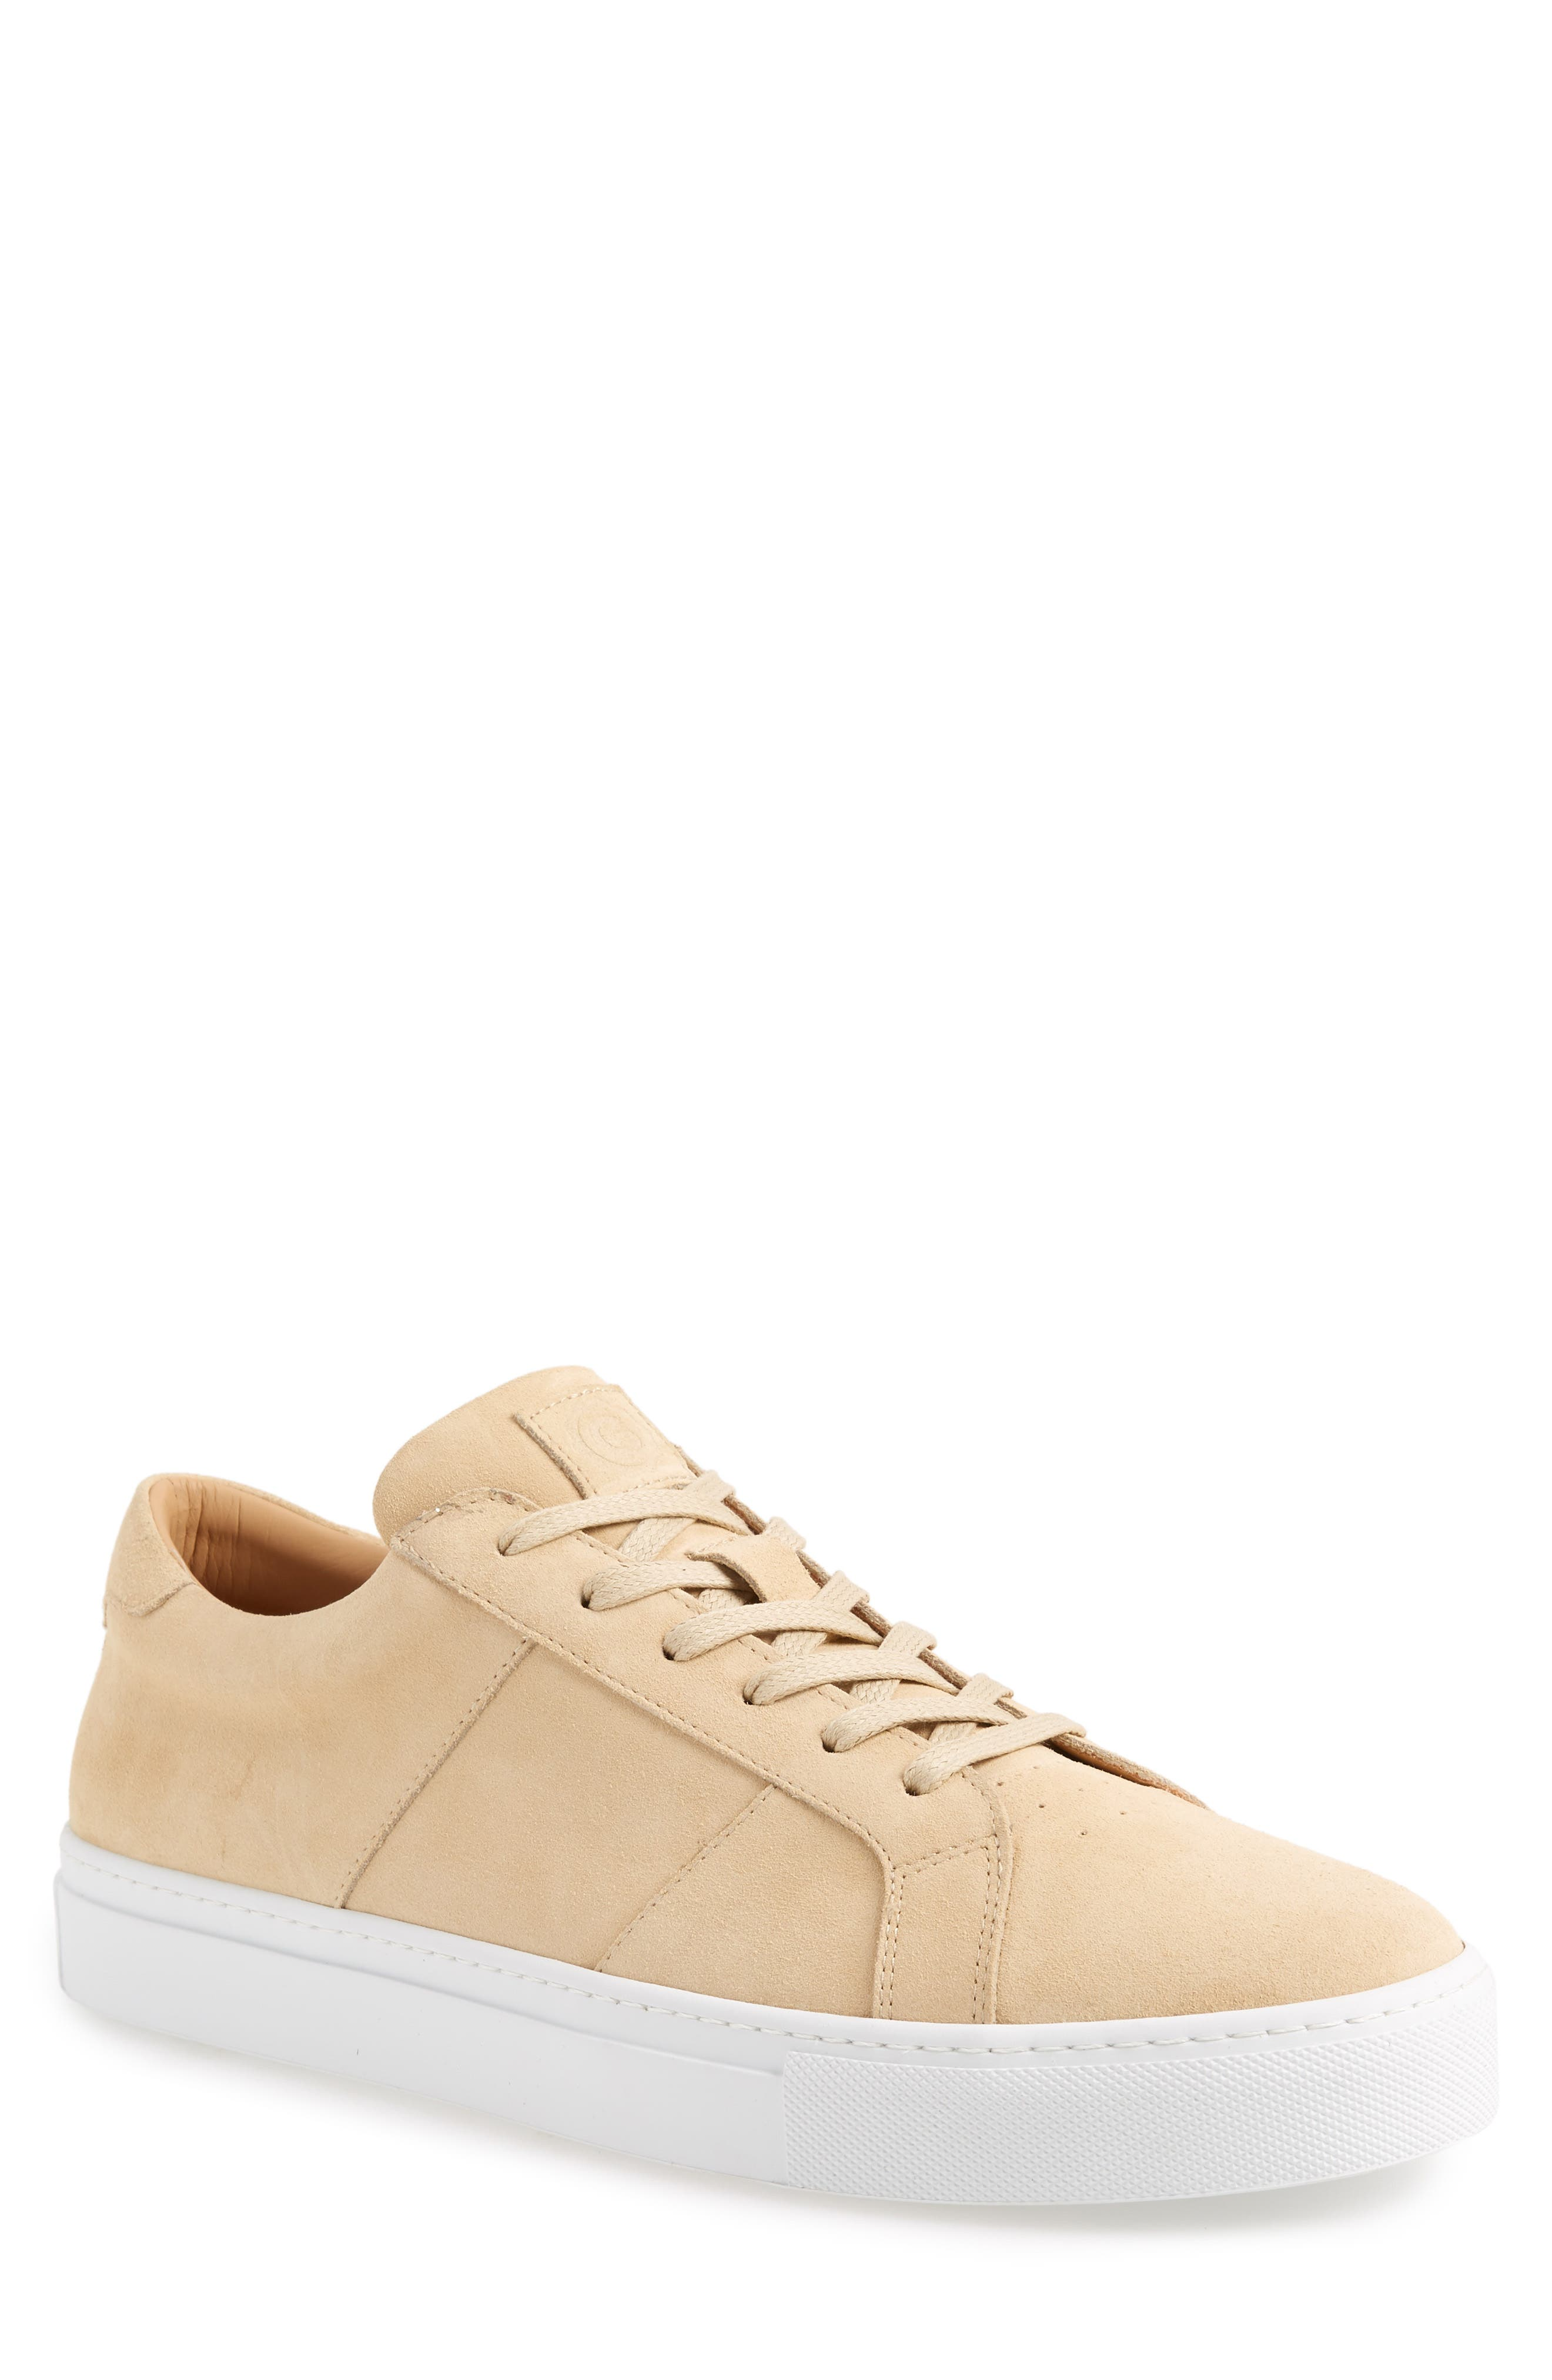 Nick Wooster x GREATS Royale Sneaker,                             Main thumbnail 1, color,                             250